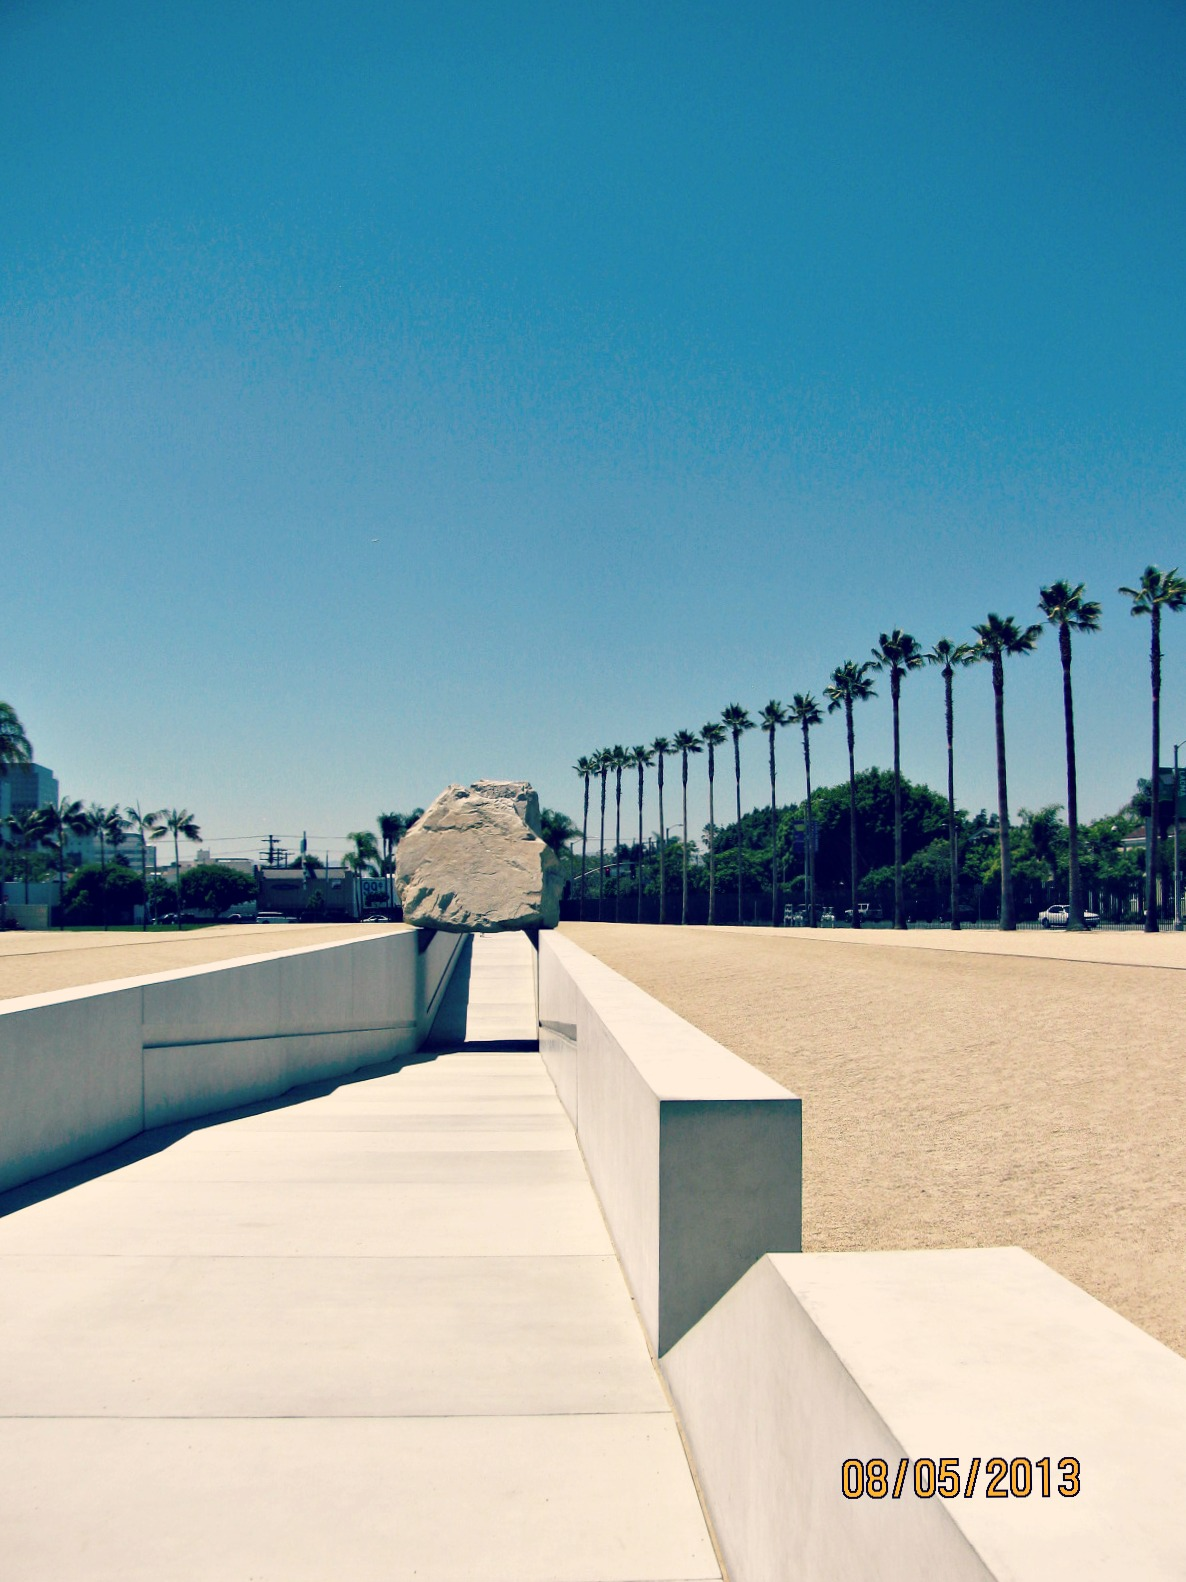 LACMA // Levitated Mass from the Ramp